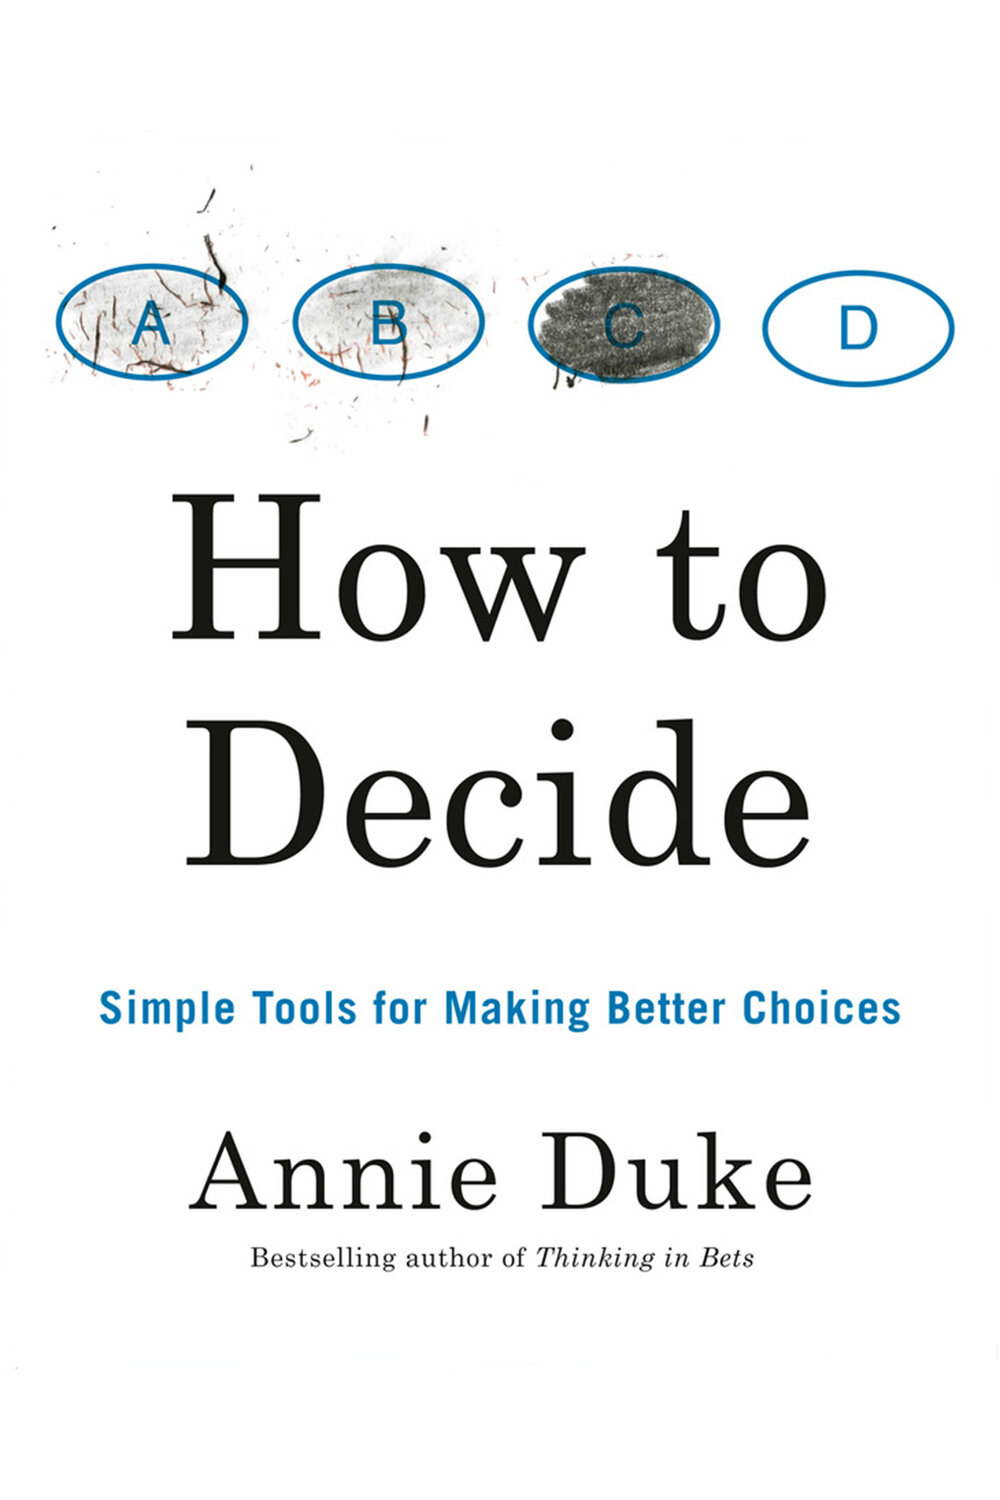 How to Decide: Simple Tools for Making Better Choices by Annie Duke